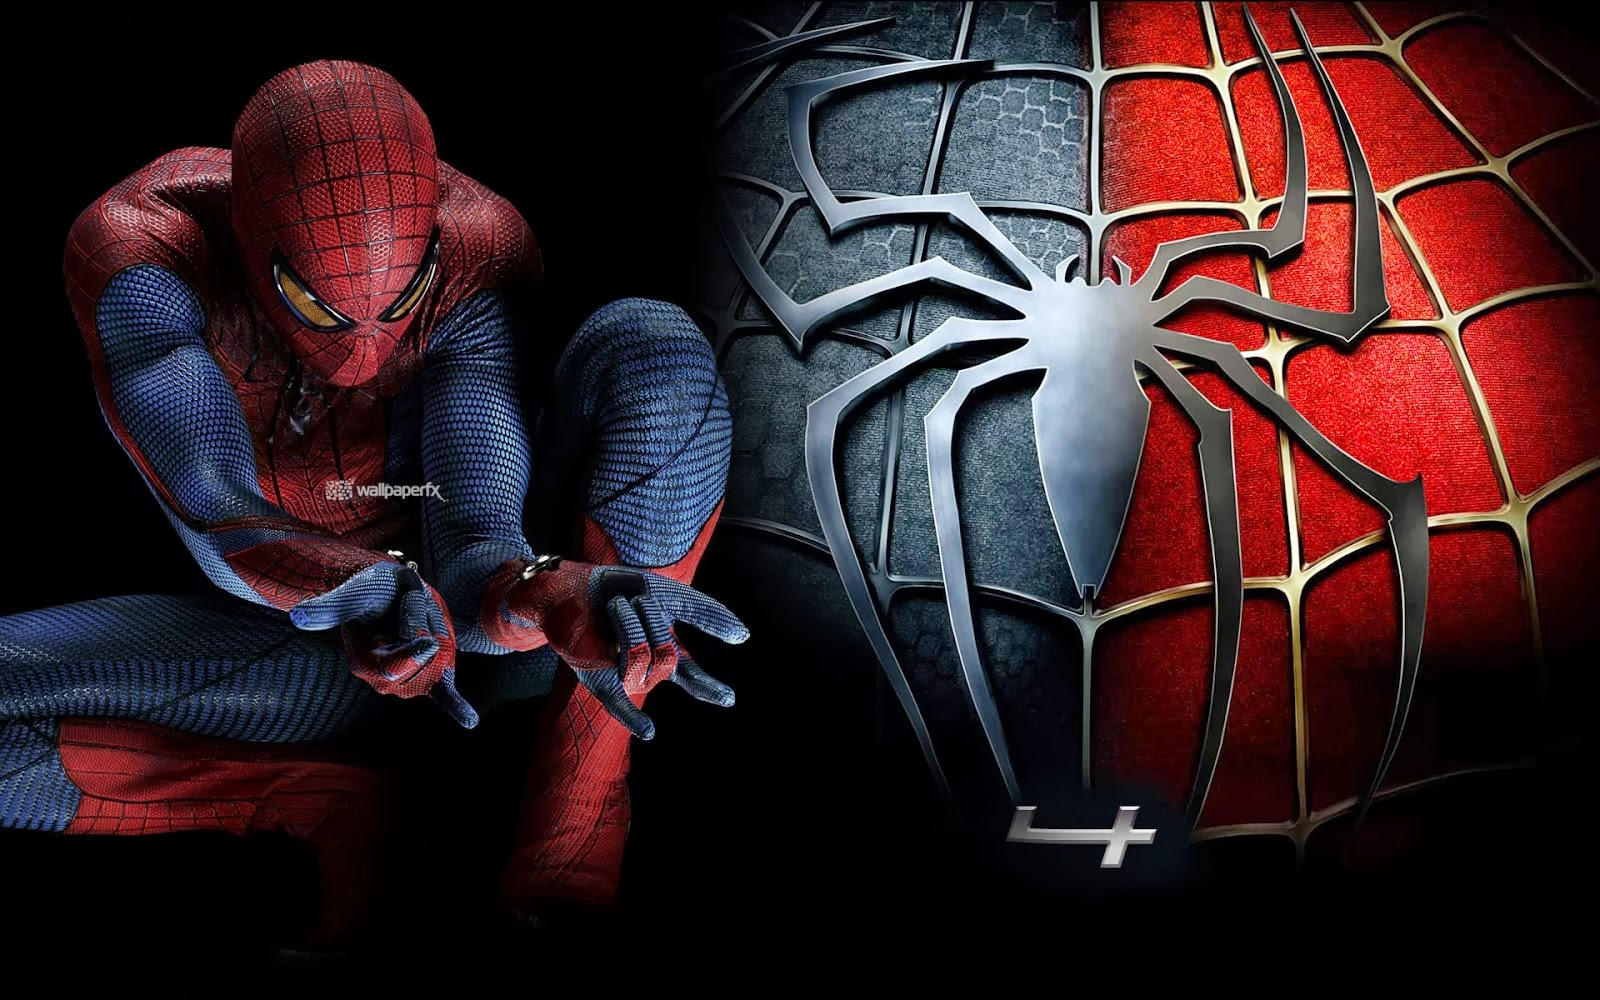 wallpaper hd for desktop background: spiderman 4 hd wallpapers